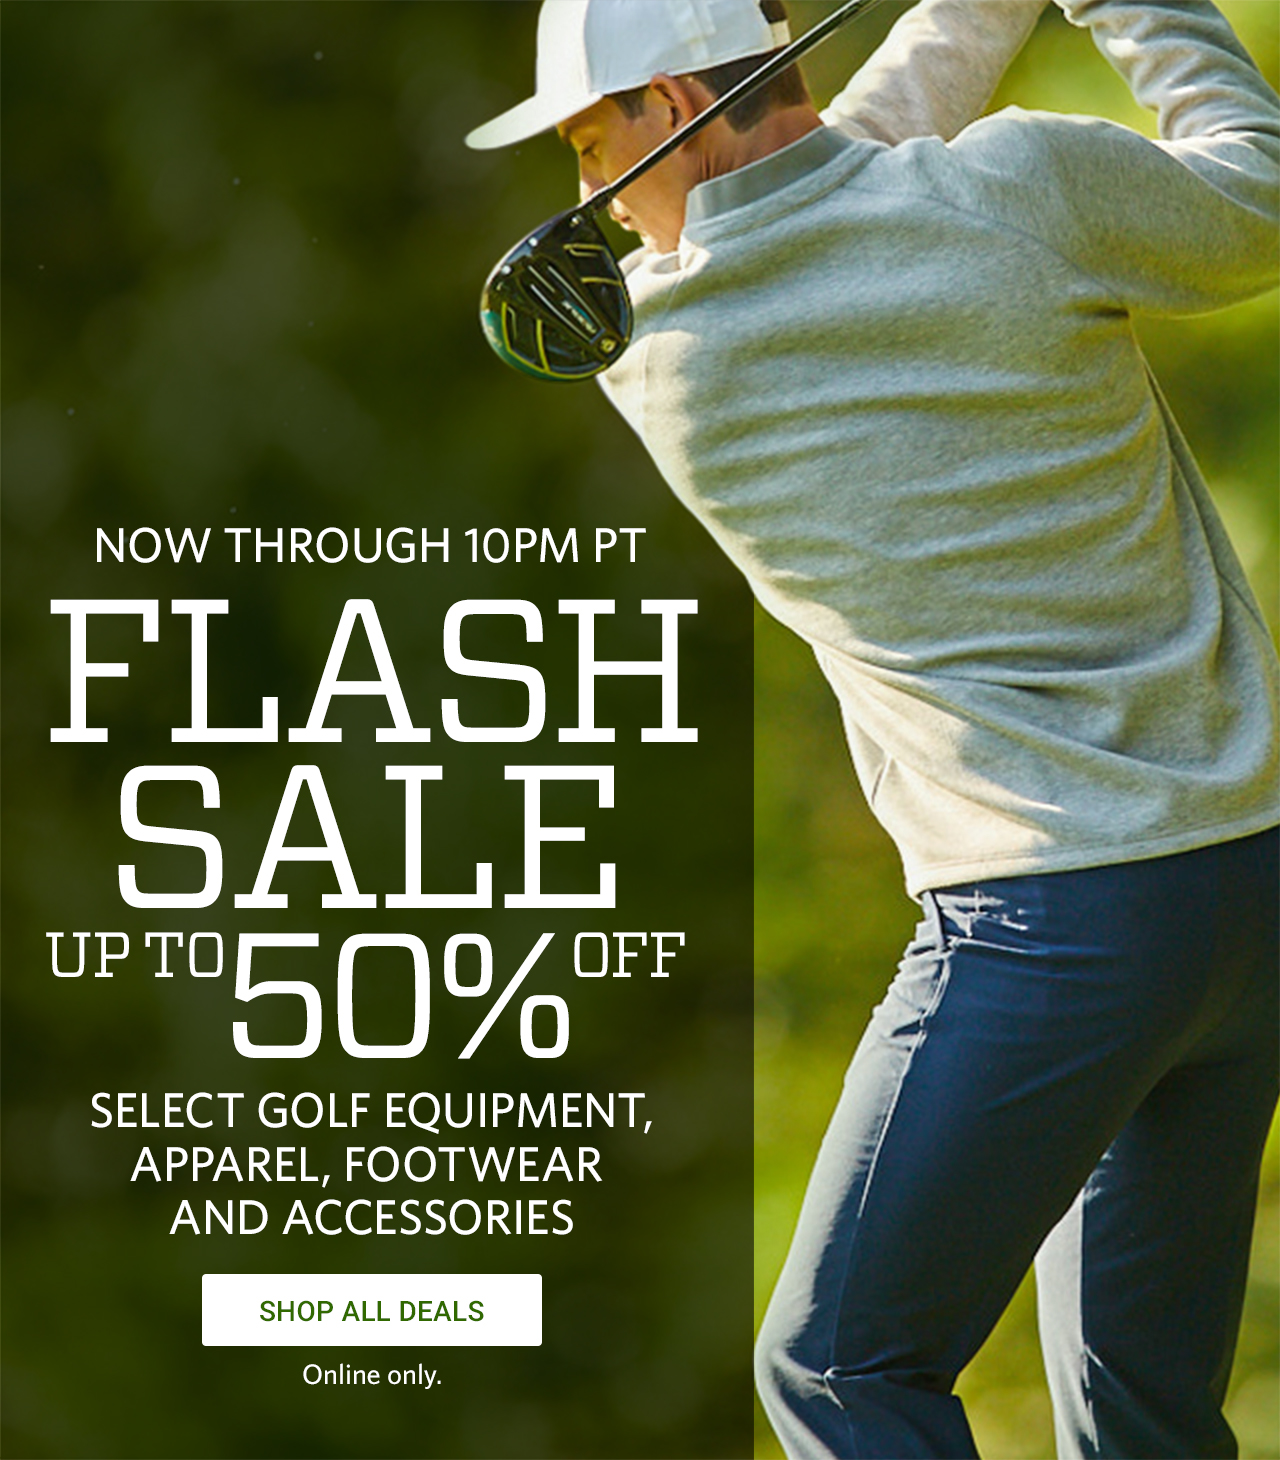 Now Through 10PM PT, Flash Sale, Up To 50% Off Select Golf Equipment, Apparel, Footwear and Accessories. Shop All Deals. Online Only.